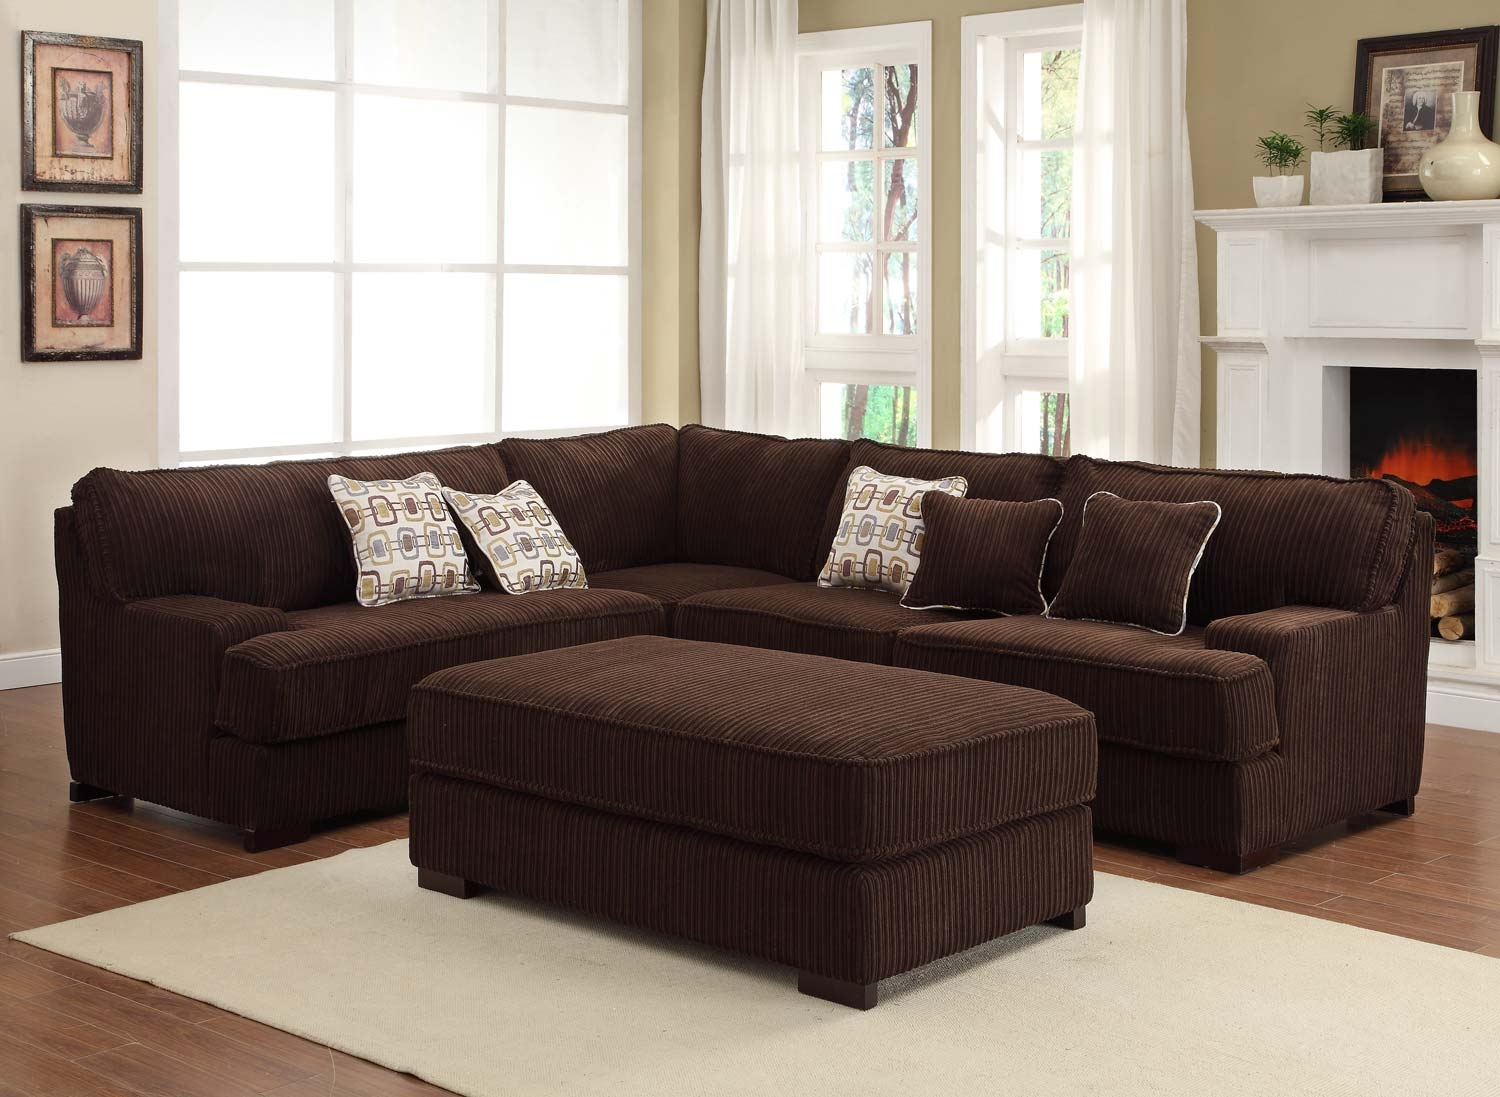 Chocolate Brown Sectional Sofa Sofa Menzilperde With Regard To Chocolate Brown Sectional Sofa (Image 9 of 15)